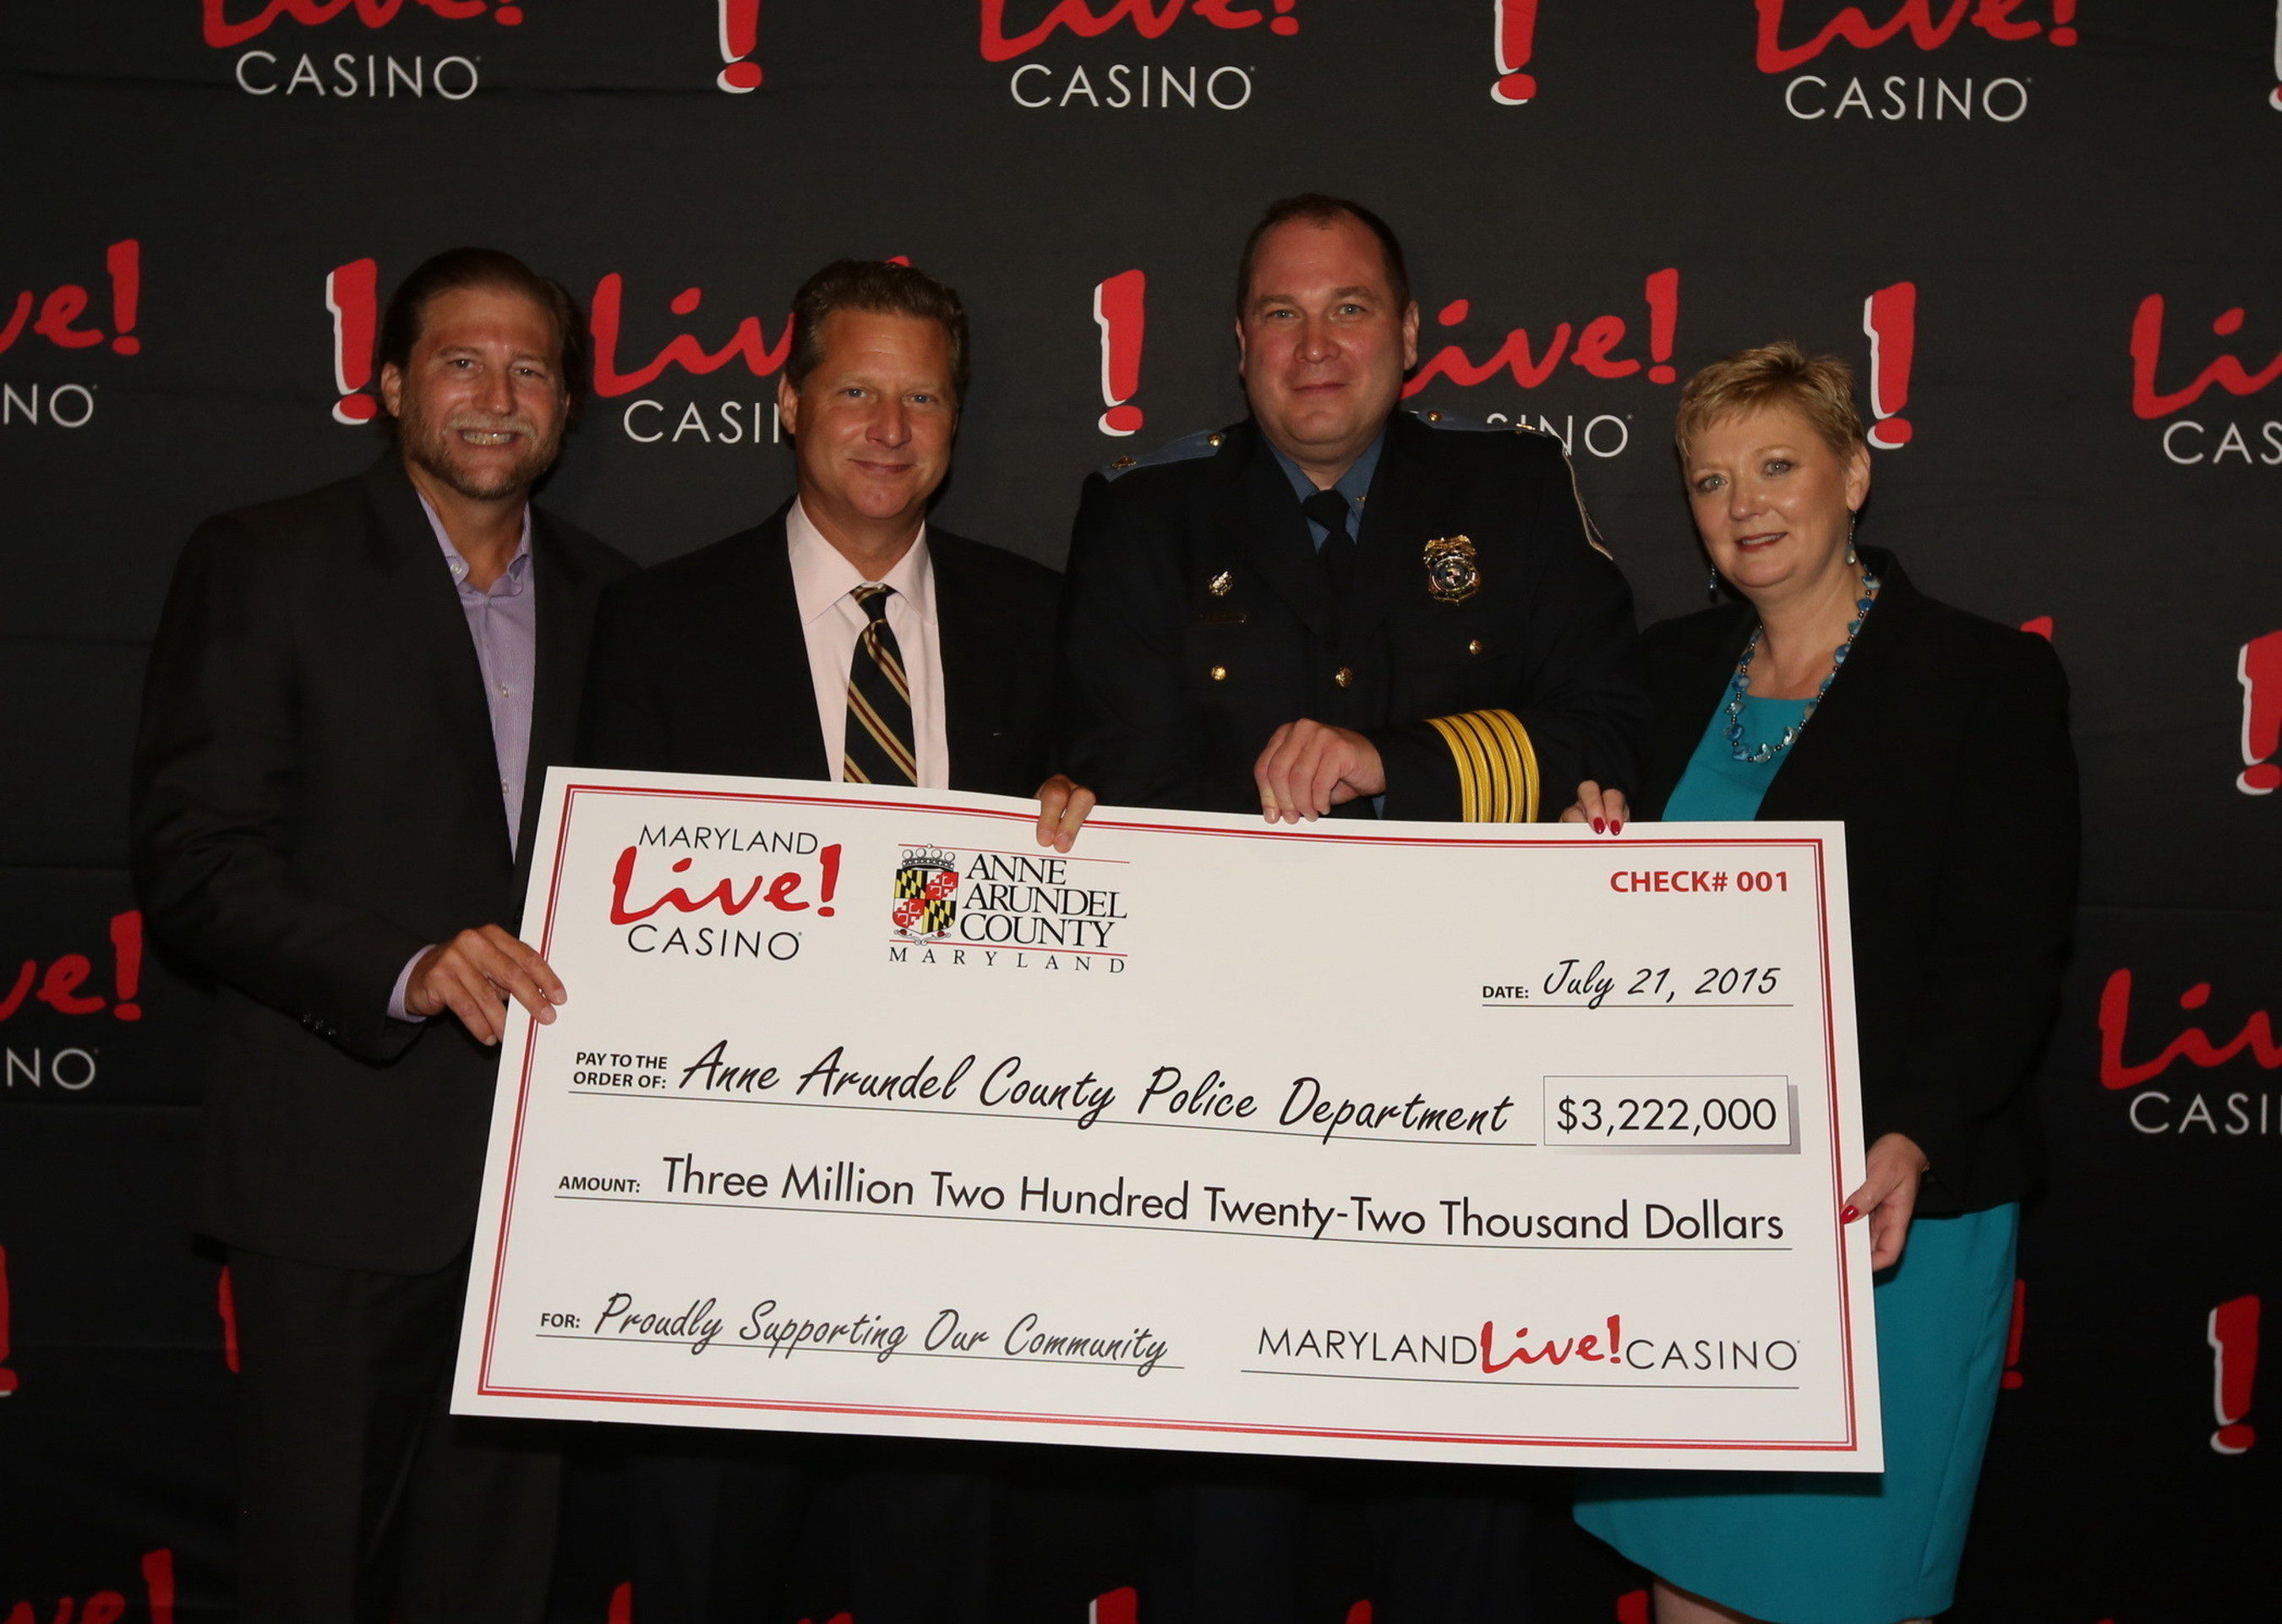 Maryland Live Casino And Anne Arundel County Award 16 Million In